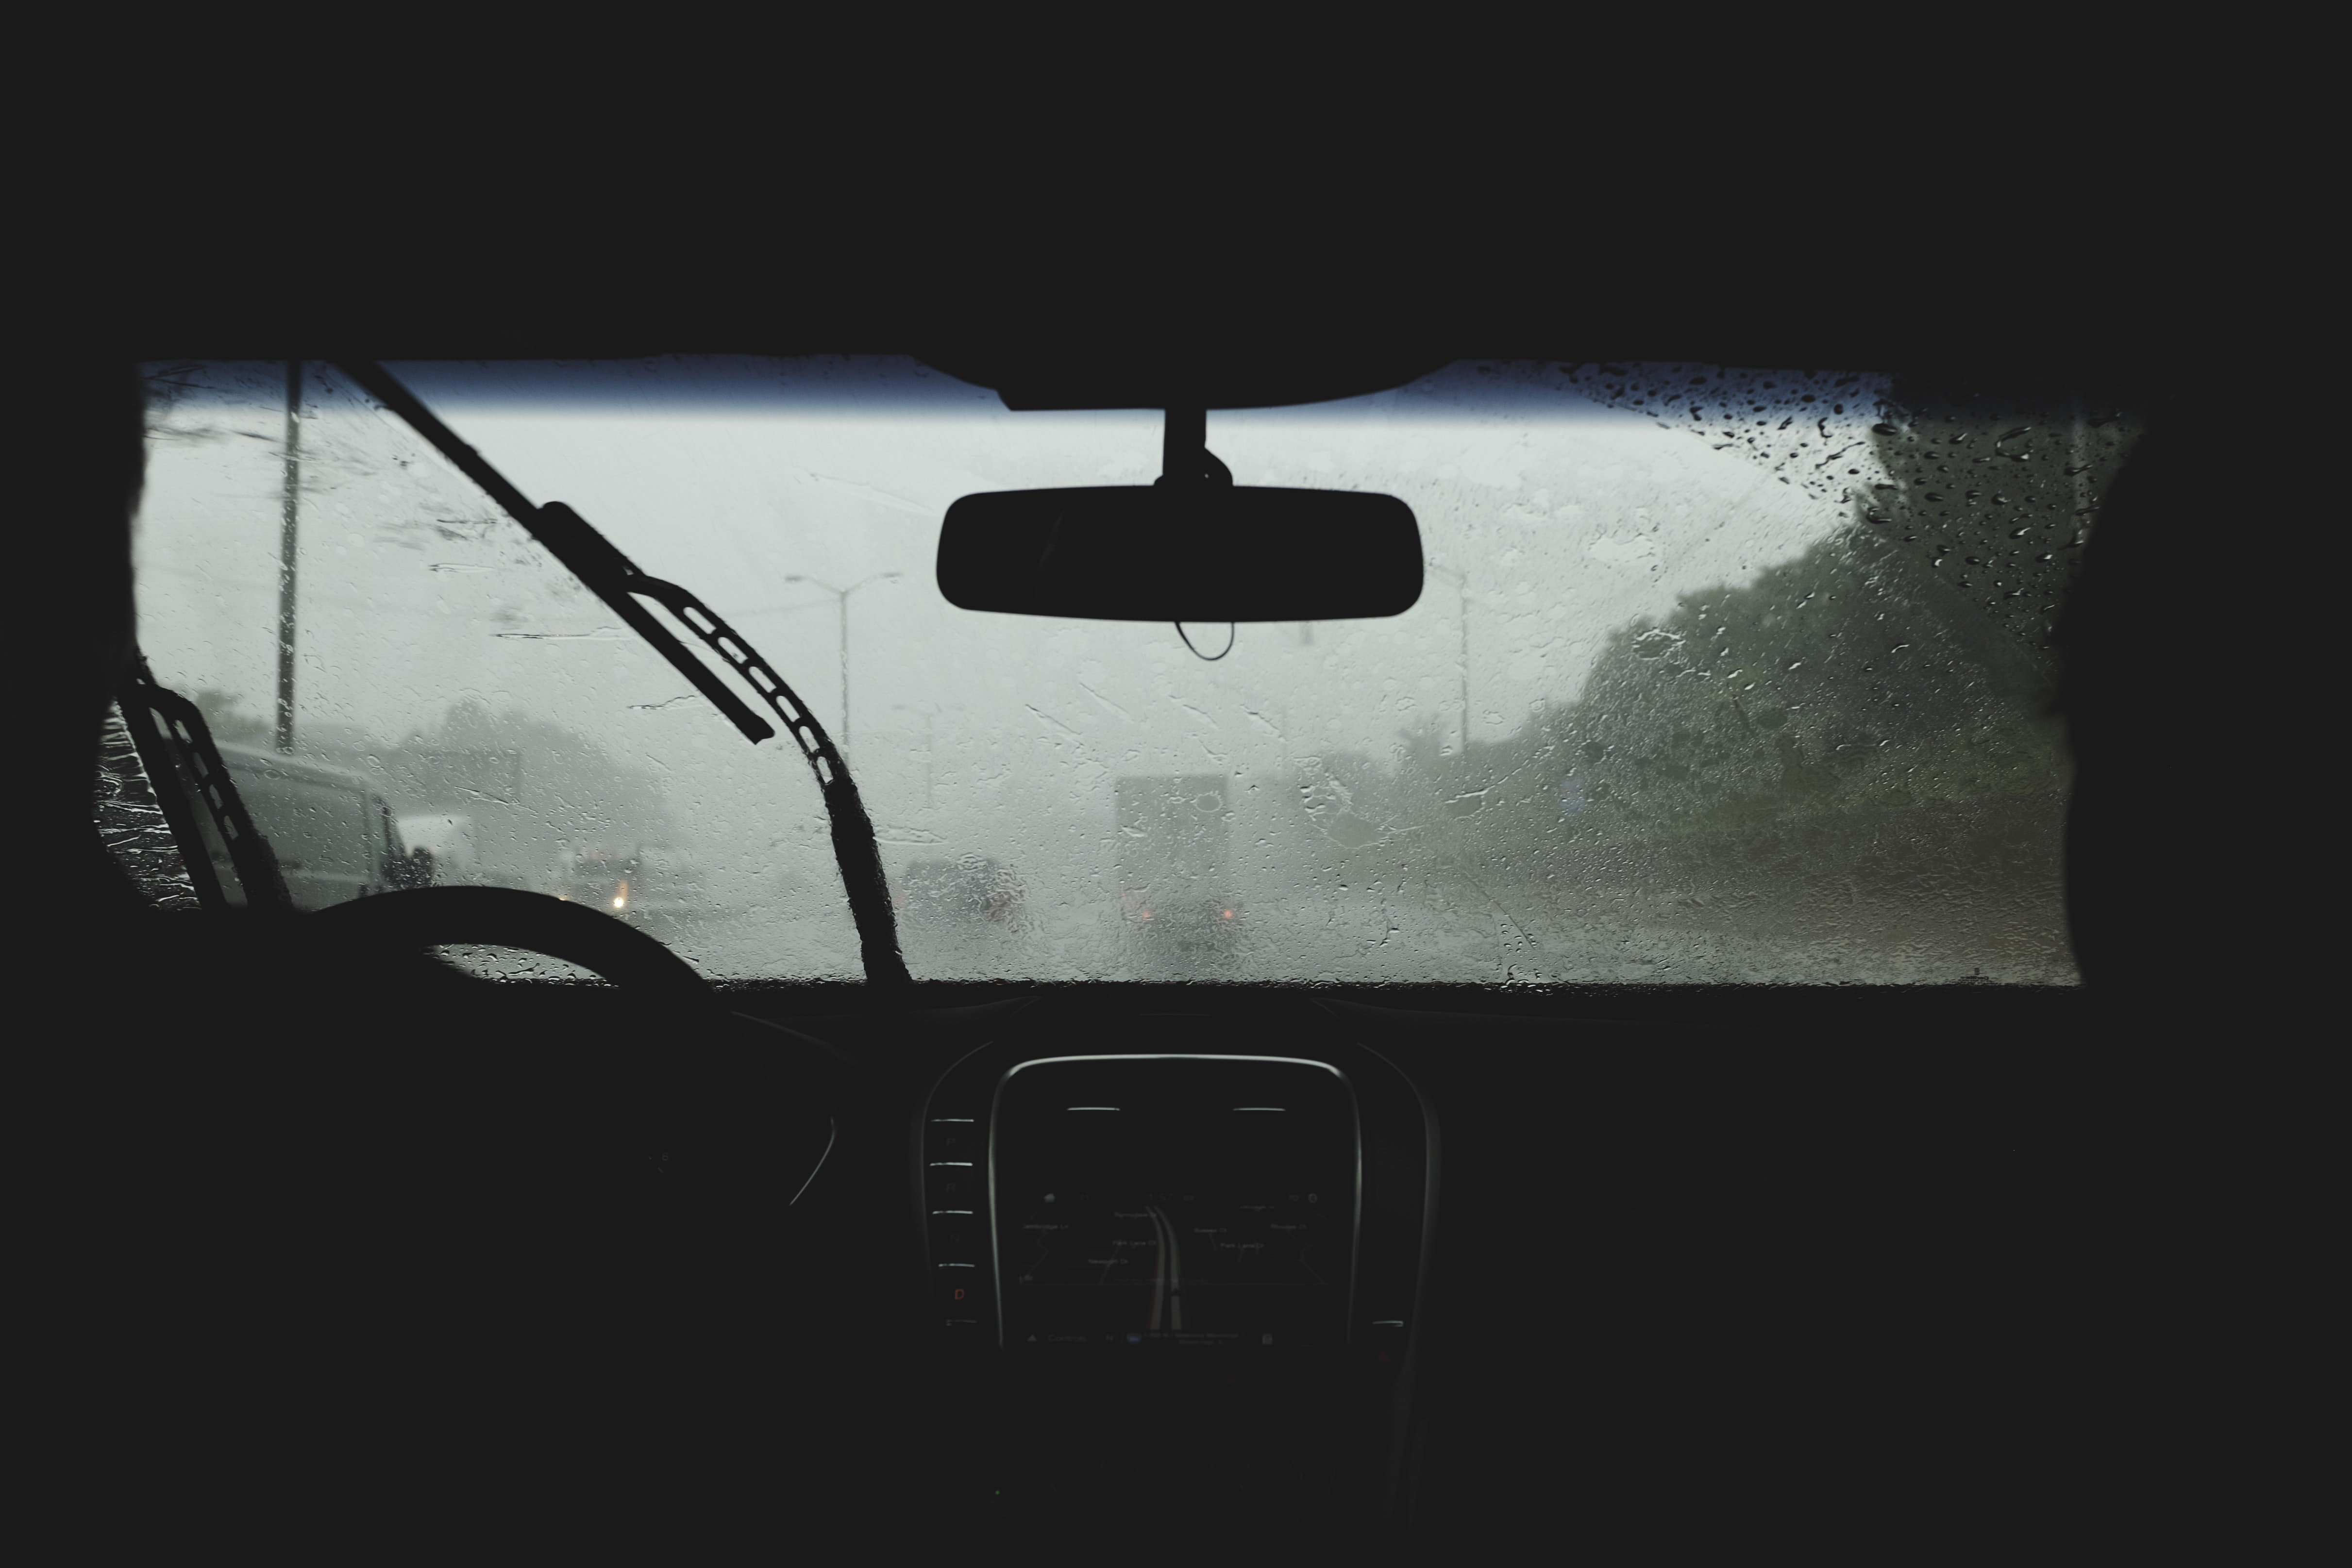 two person driving on rainy road